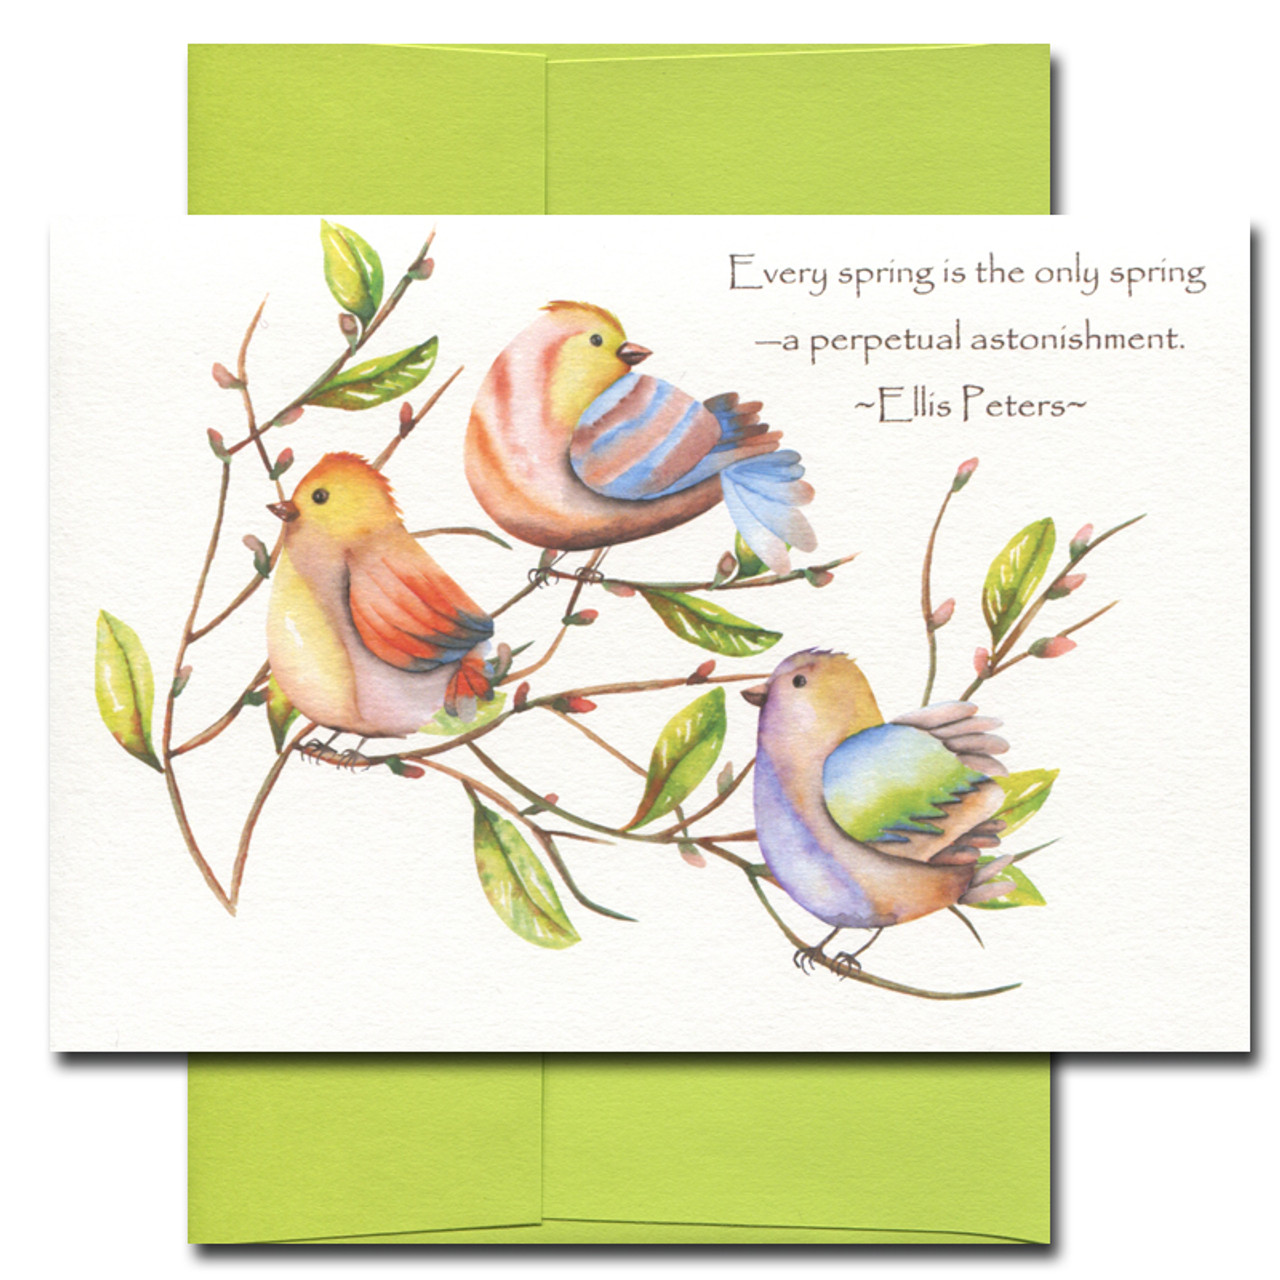 Astonishment card features three small birds on a springtime branch and the quote: Every spring is the only spring - a perpetual astonishment. -Ellis Peters